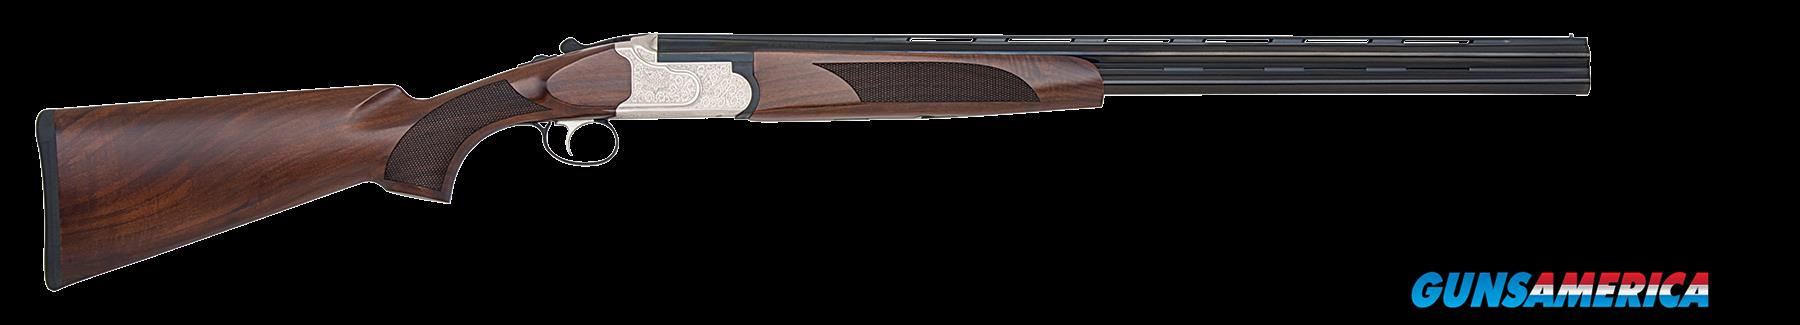 "Mossberg 75419 Silver Reserve II Field with Extractors Over/Under 28 Gauge 26"" 3"" Black Walnut Stk  Guns > Shotguns > Mossberg Shotguns > Over/Under"